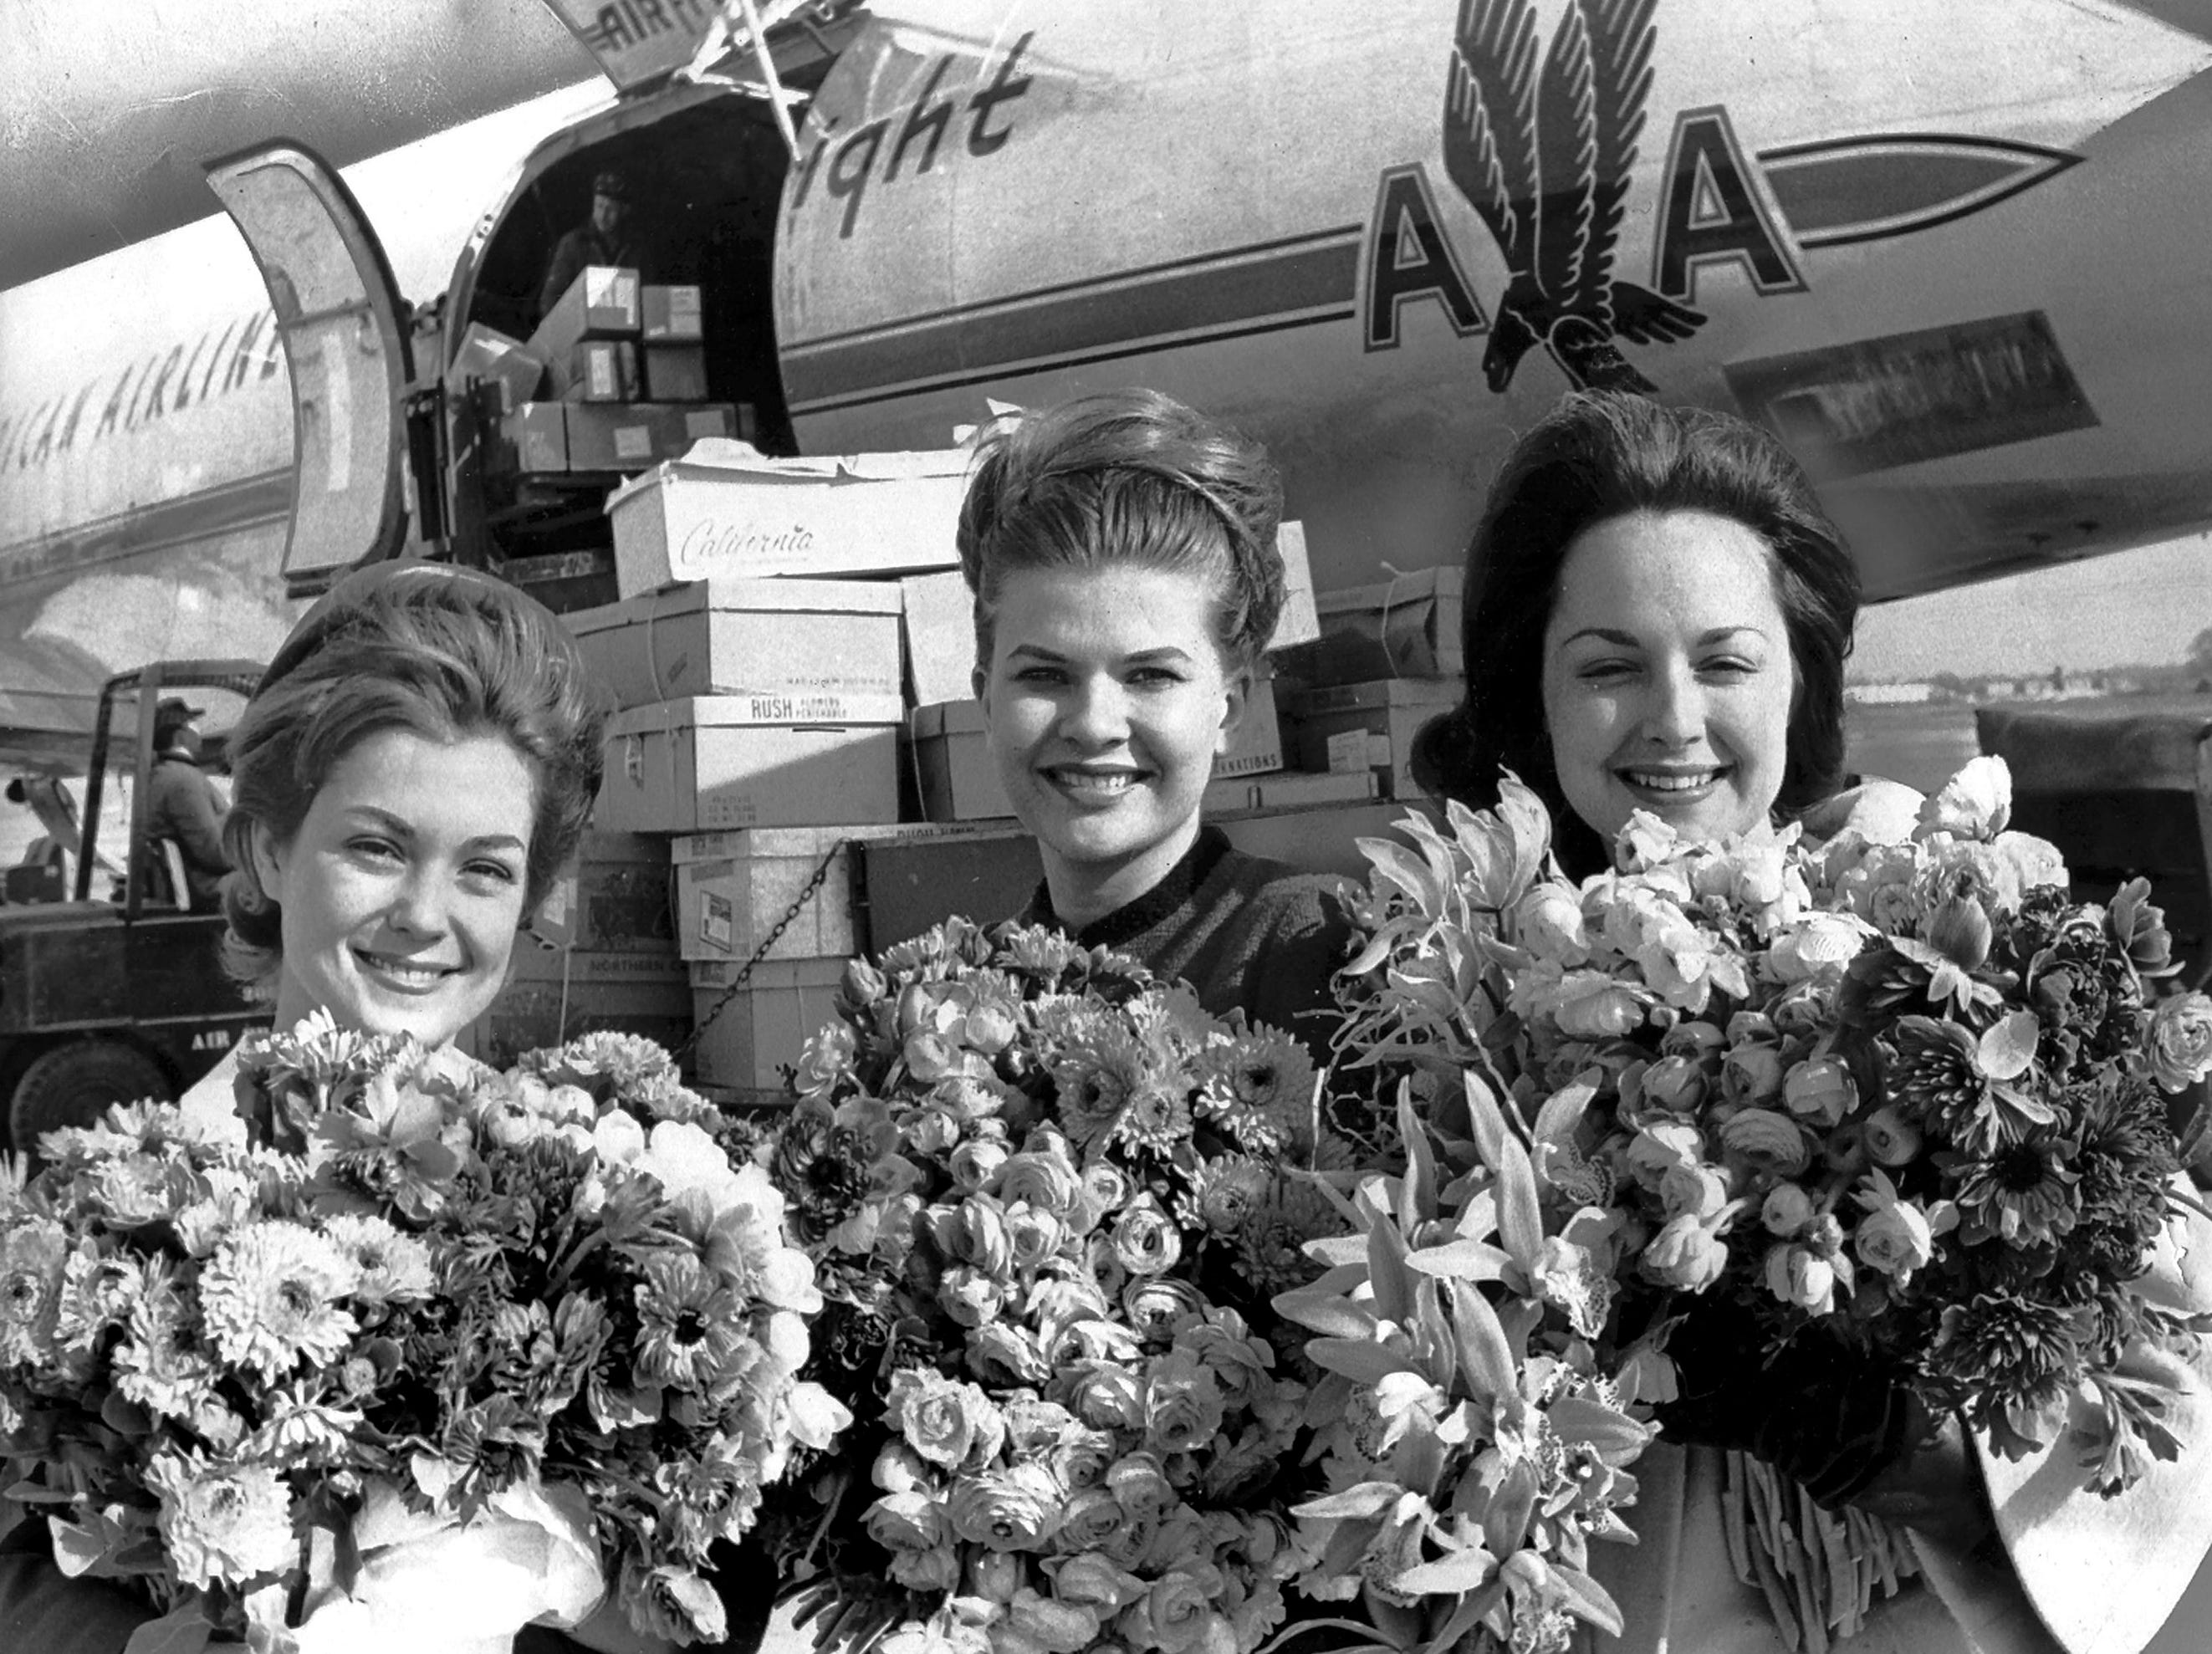 "January 18, 1964 - Fresh picked California flowers (almost a ton of them) shared the spotlight with three Memphis beauties on Jan. 18, 1964. They are (from left) Miss Jane Brackhahn; Miss Barbara Anderson, Miss Memphis; and Miss Patsy Jones, a former Miss Memphis. The flowers were flown here from California to decorate Goldsmith's for their ""California on the Mississippi"" display this week."